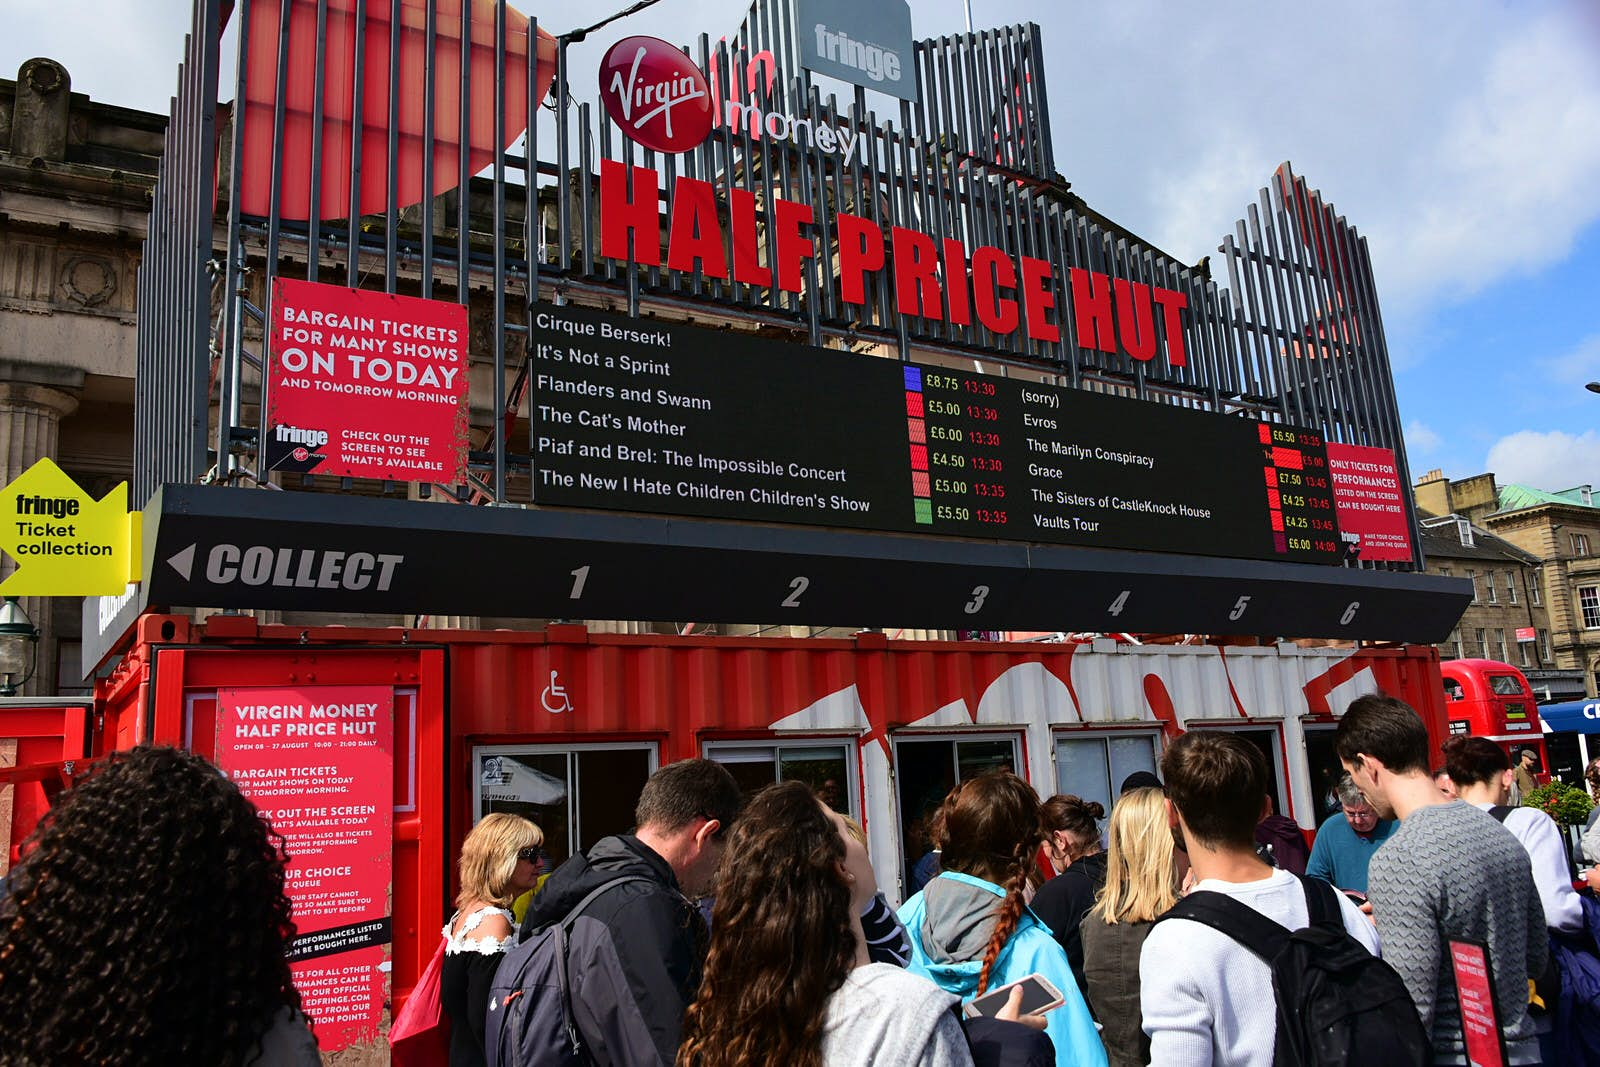 """Festival-goers on The Mound precinct queue outside the """"Half Price Hut"""" ticket office during the Edinburgh Festival Fringe. The office is in a shipping container painted red and white with windows to serve customers through."""